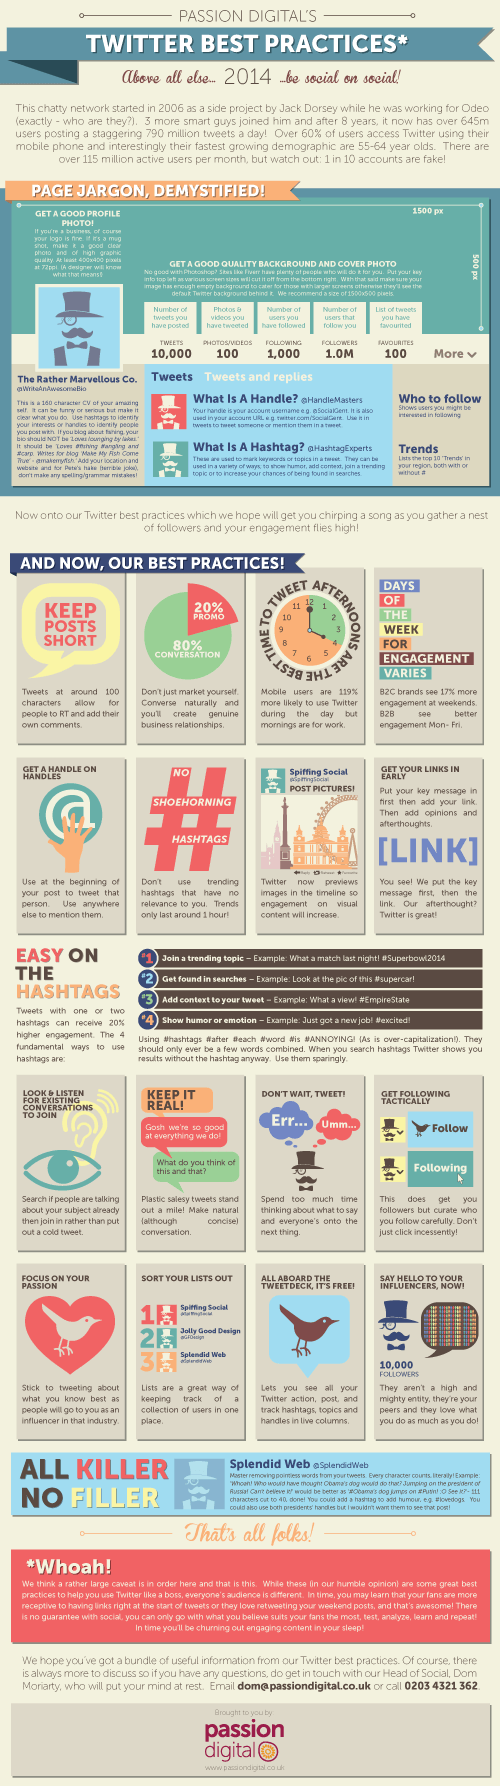 Passion-Digitals-Twitter-Best-Practices-2014-Infographic-500px-Compressed